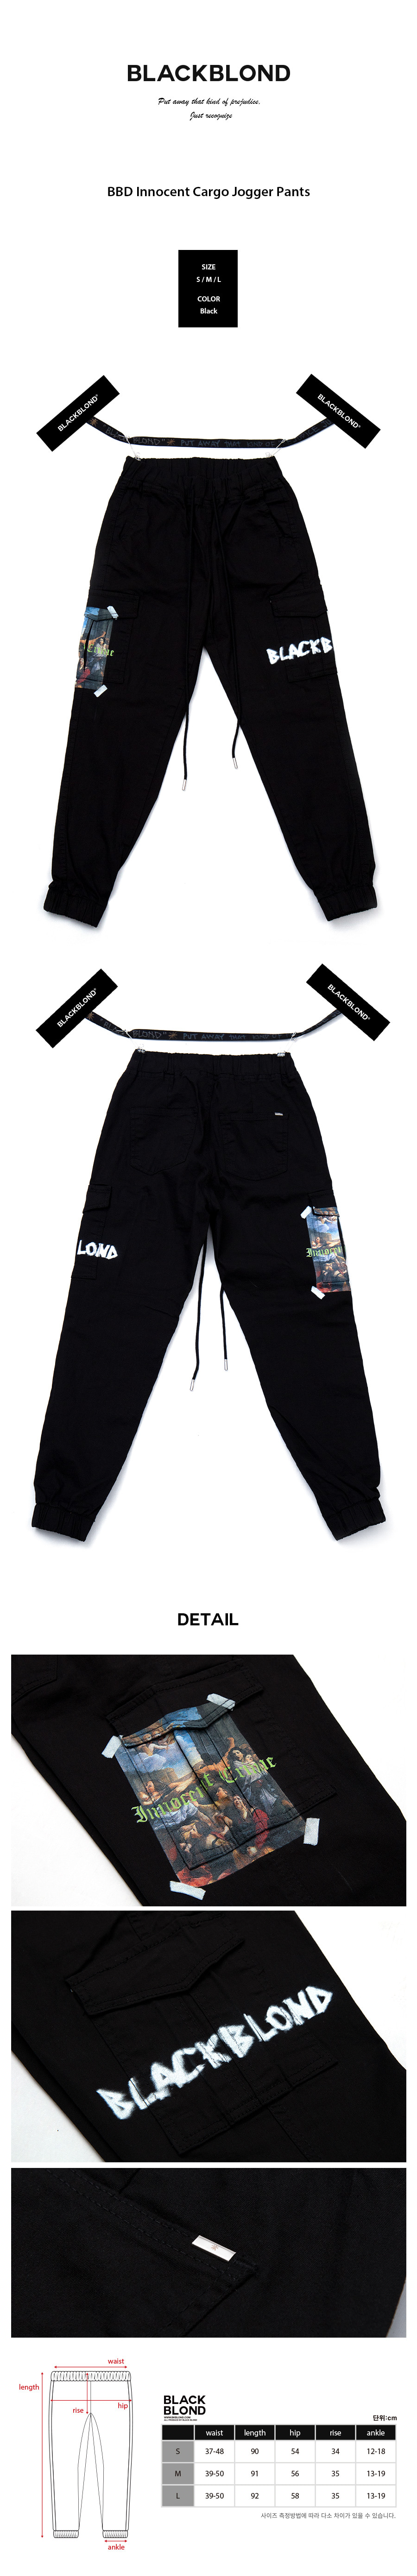 블랙블론드 BLACKBLOND - BBD Innocent Cargo Jogger Pants (Black)